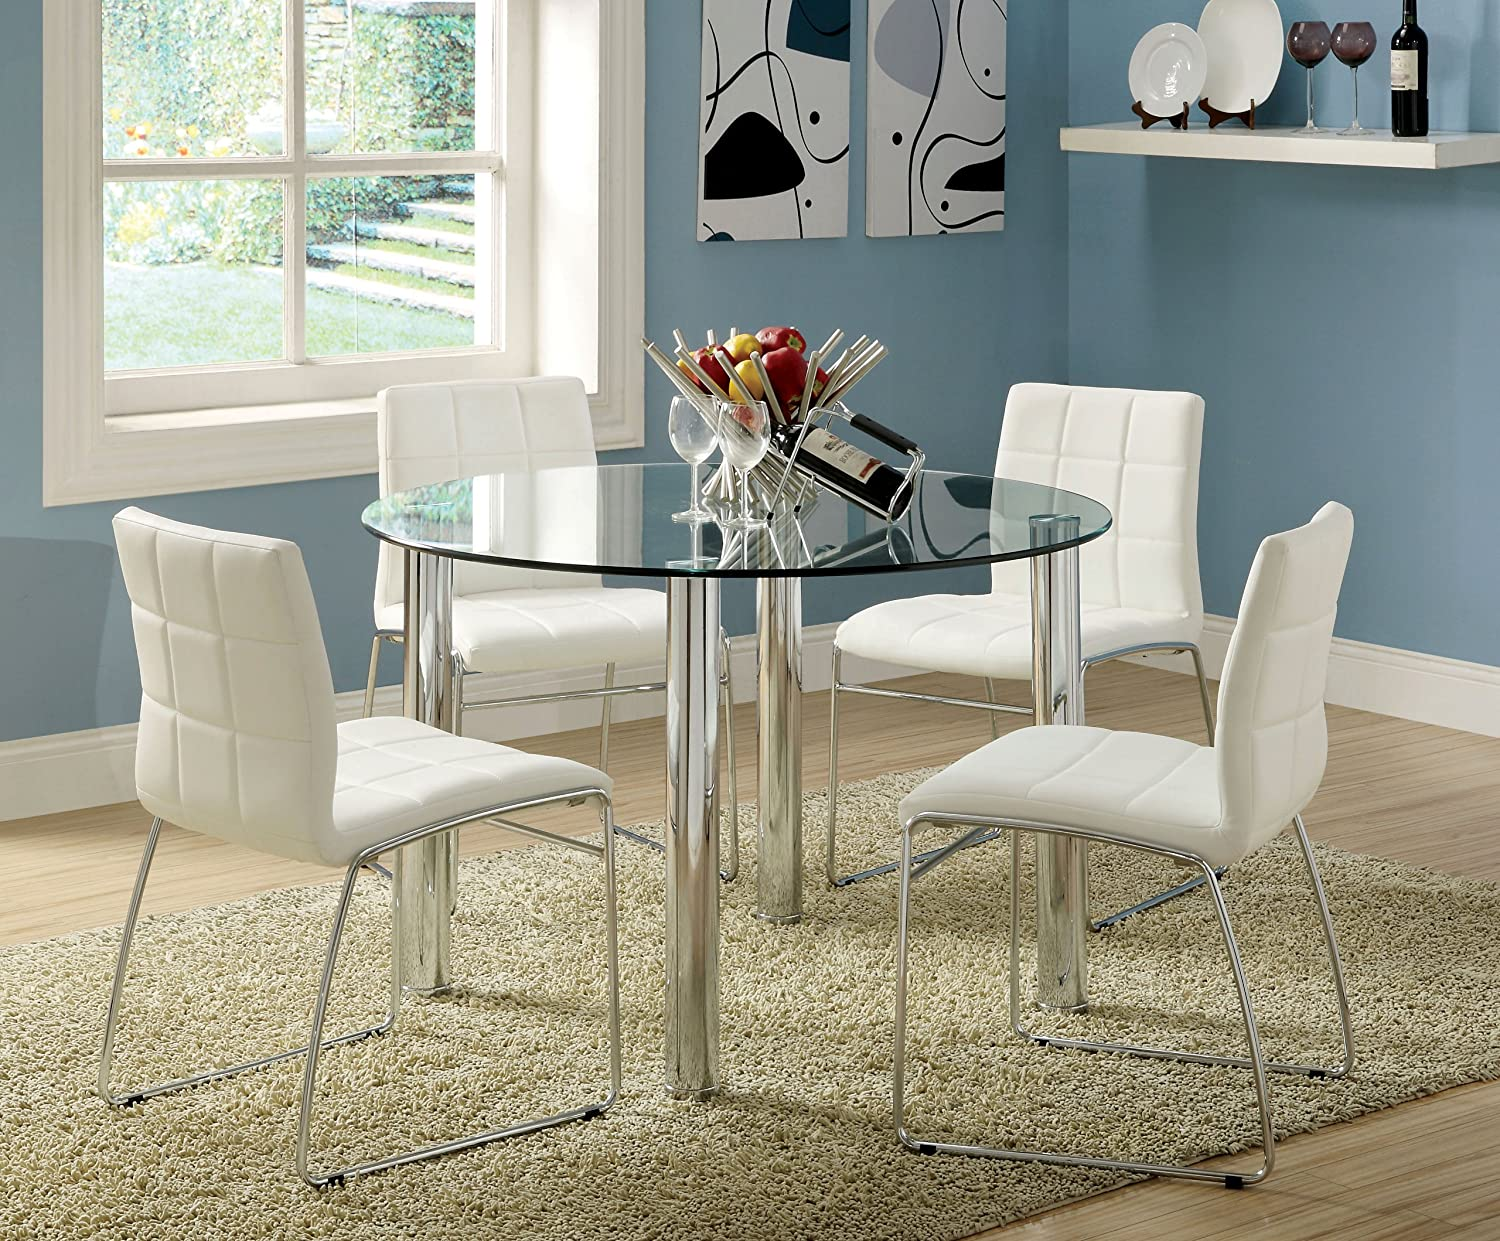 Amazon.com - Furniture of America Clarks 5-Piece Dining Set with ...